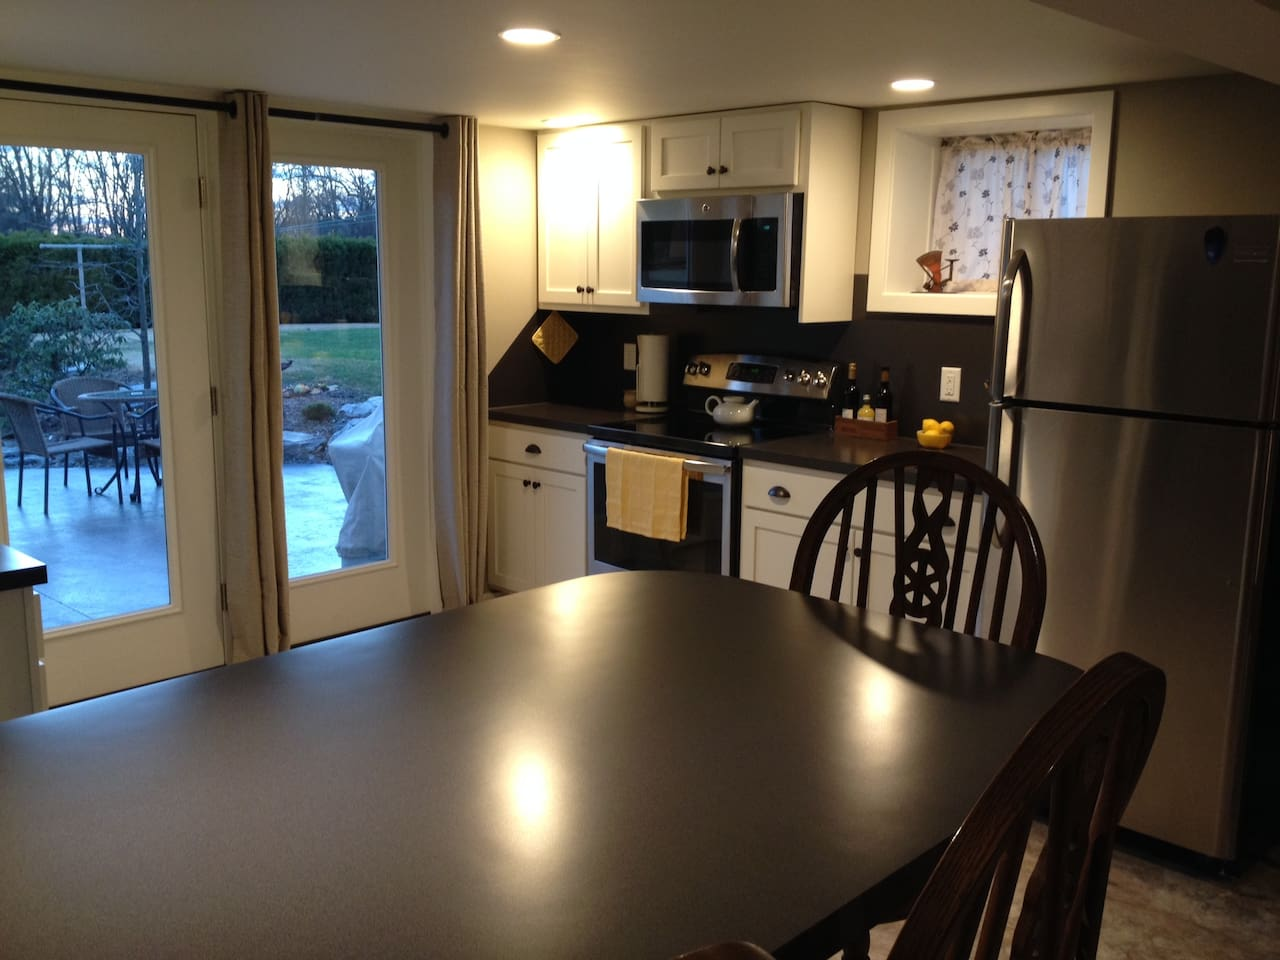 Brand new kitchen and appliances.  Enjoy the lovely backyard and patio.